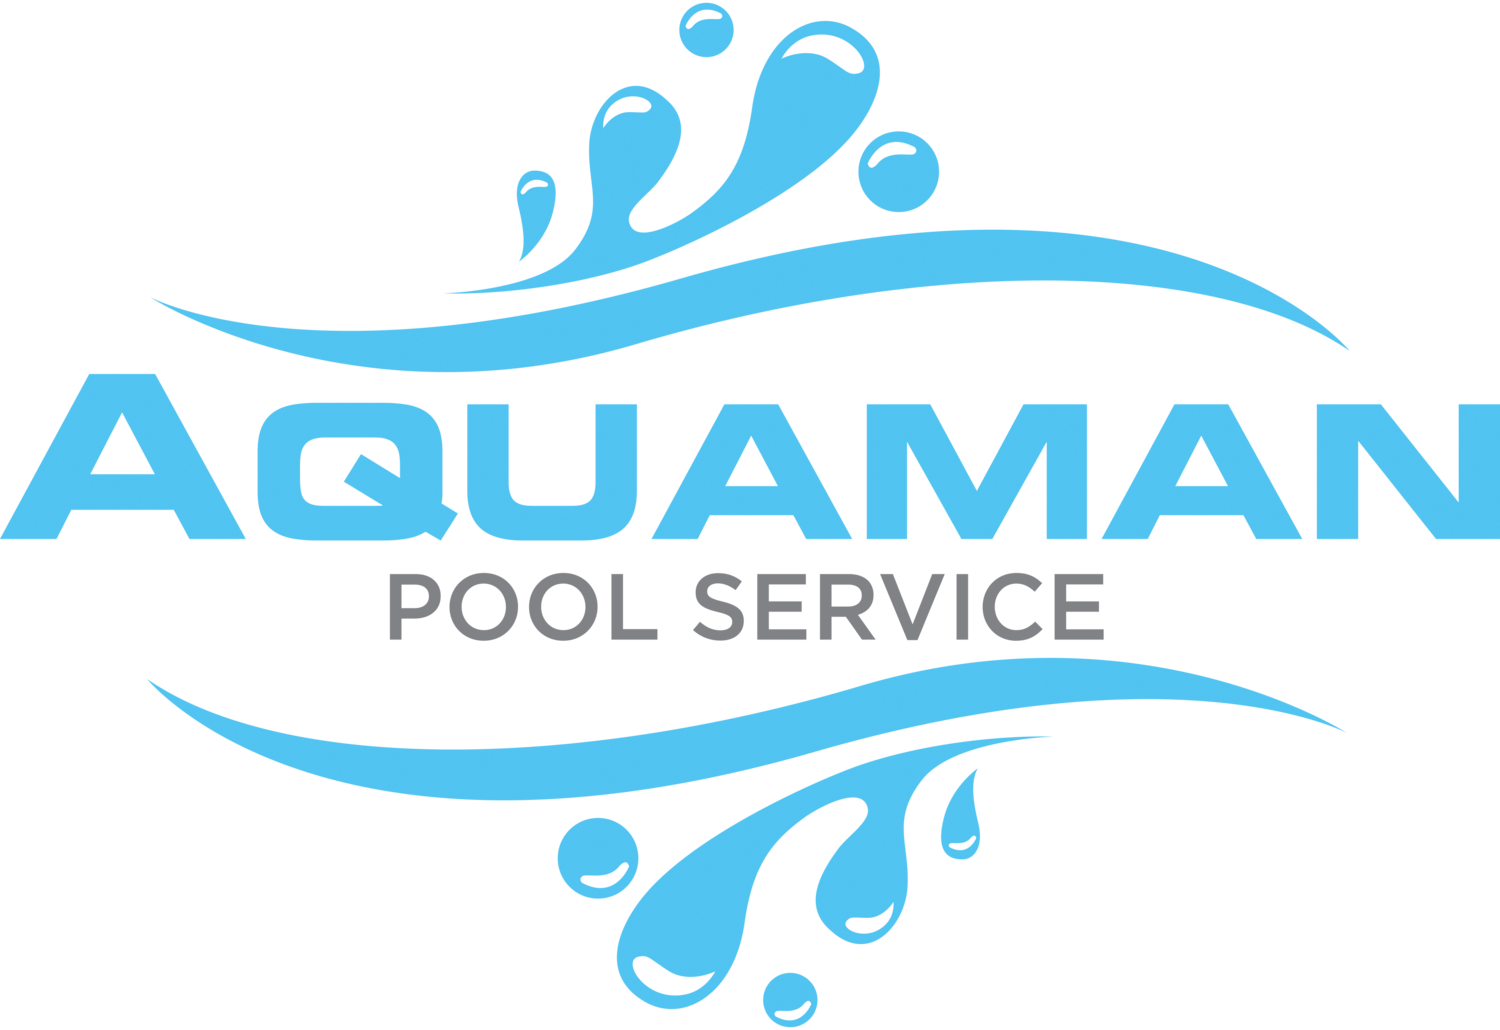 Aquaman Pool Service